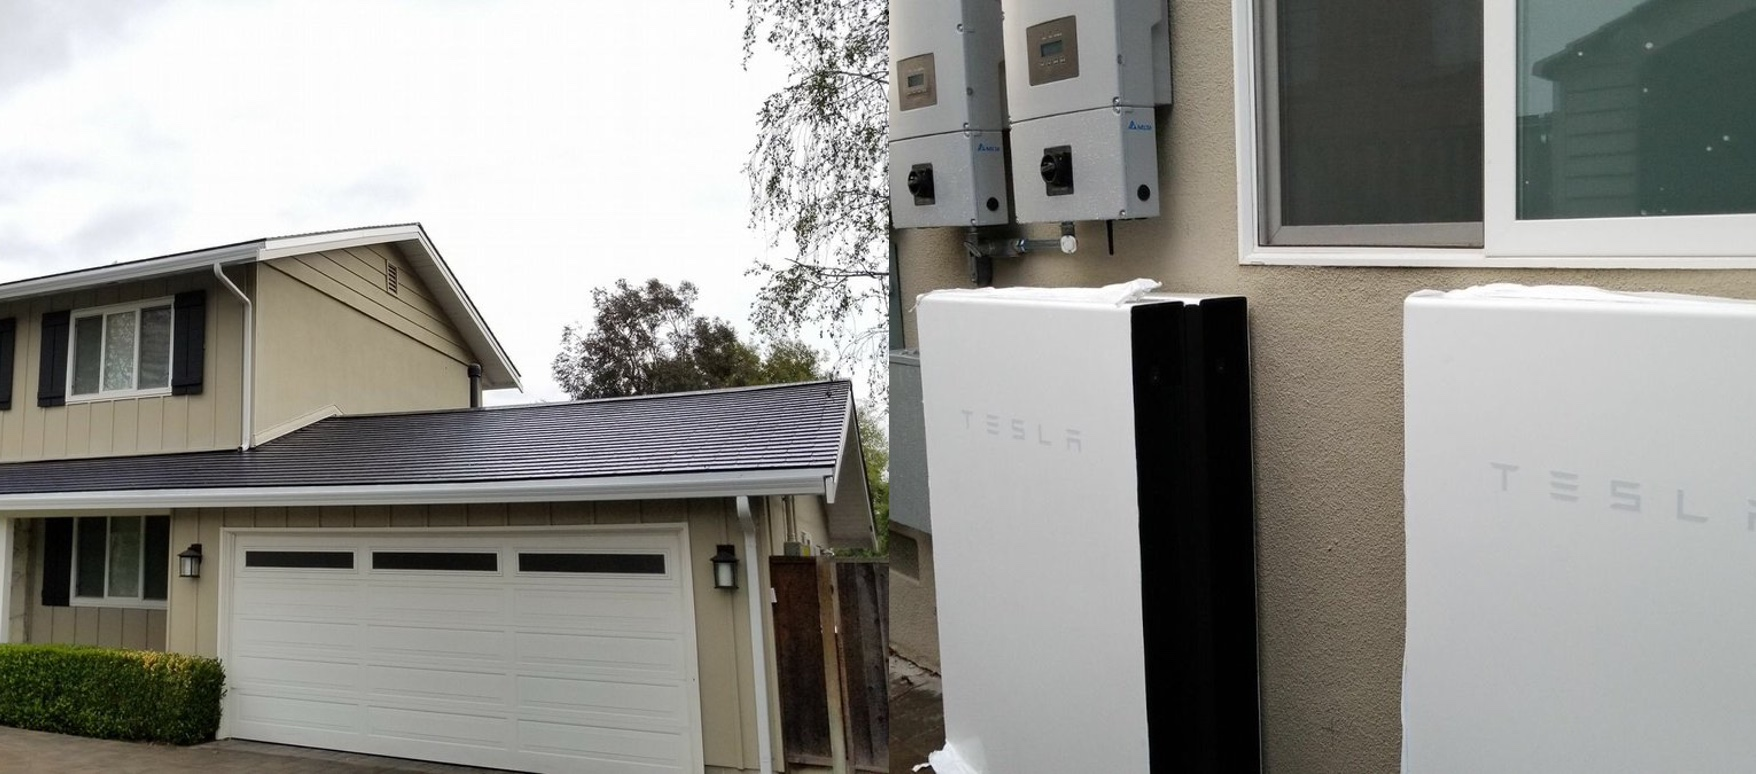 A first look at the 'Tesla house of the future' with solar roof and Powerwall batteries